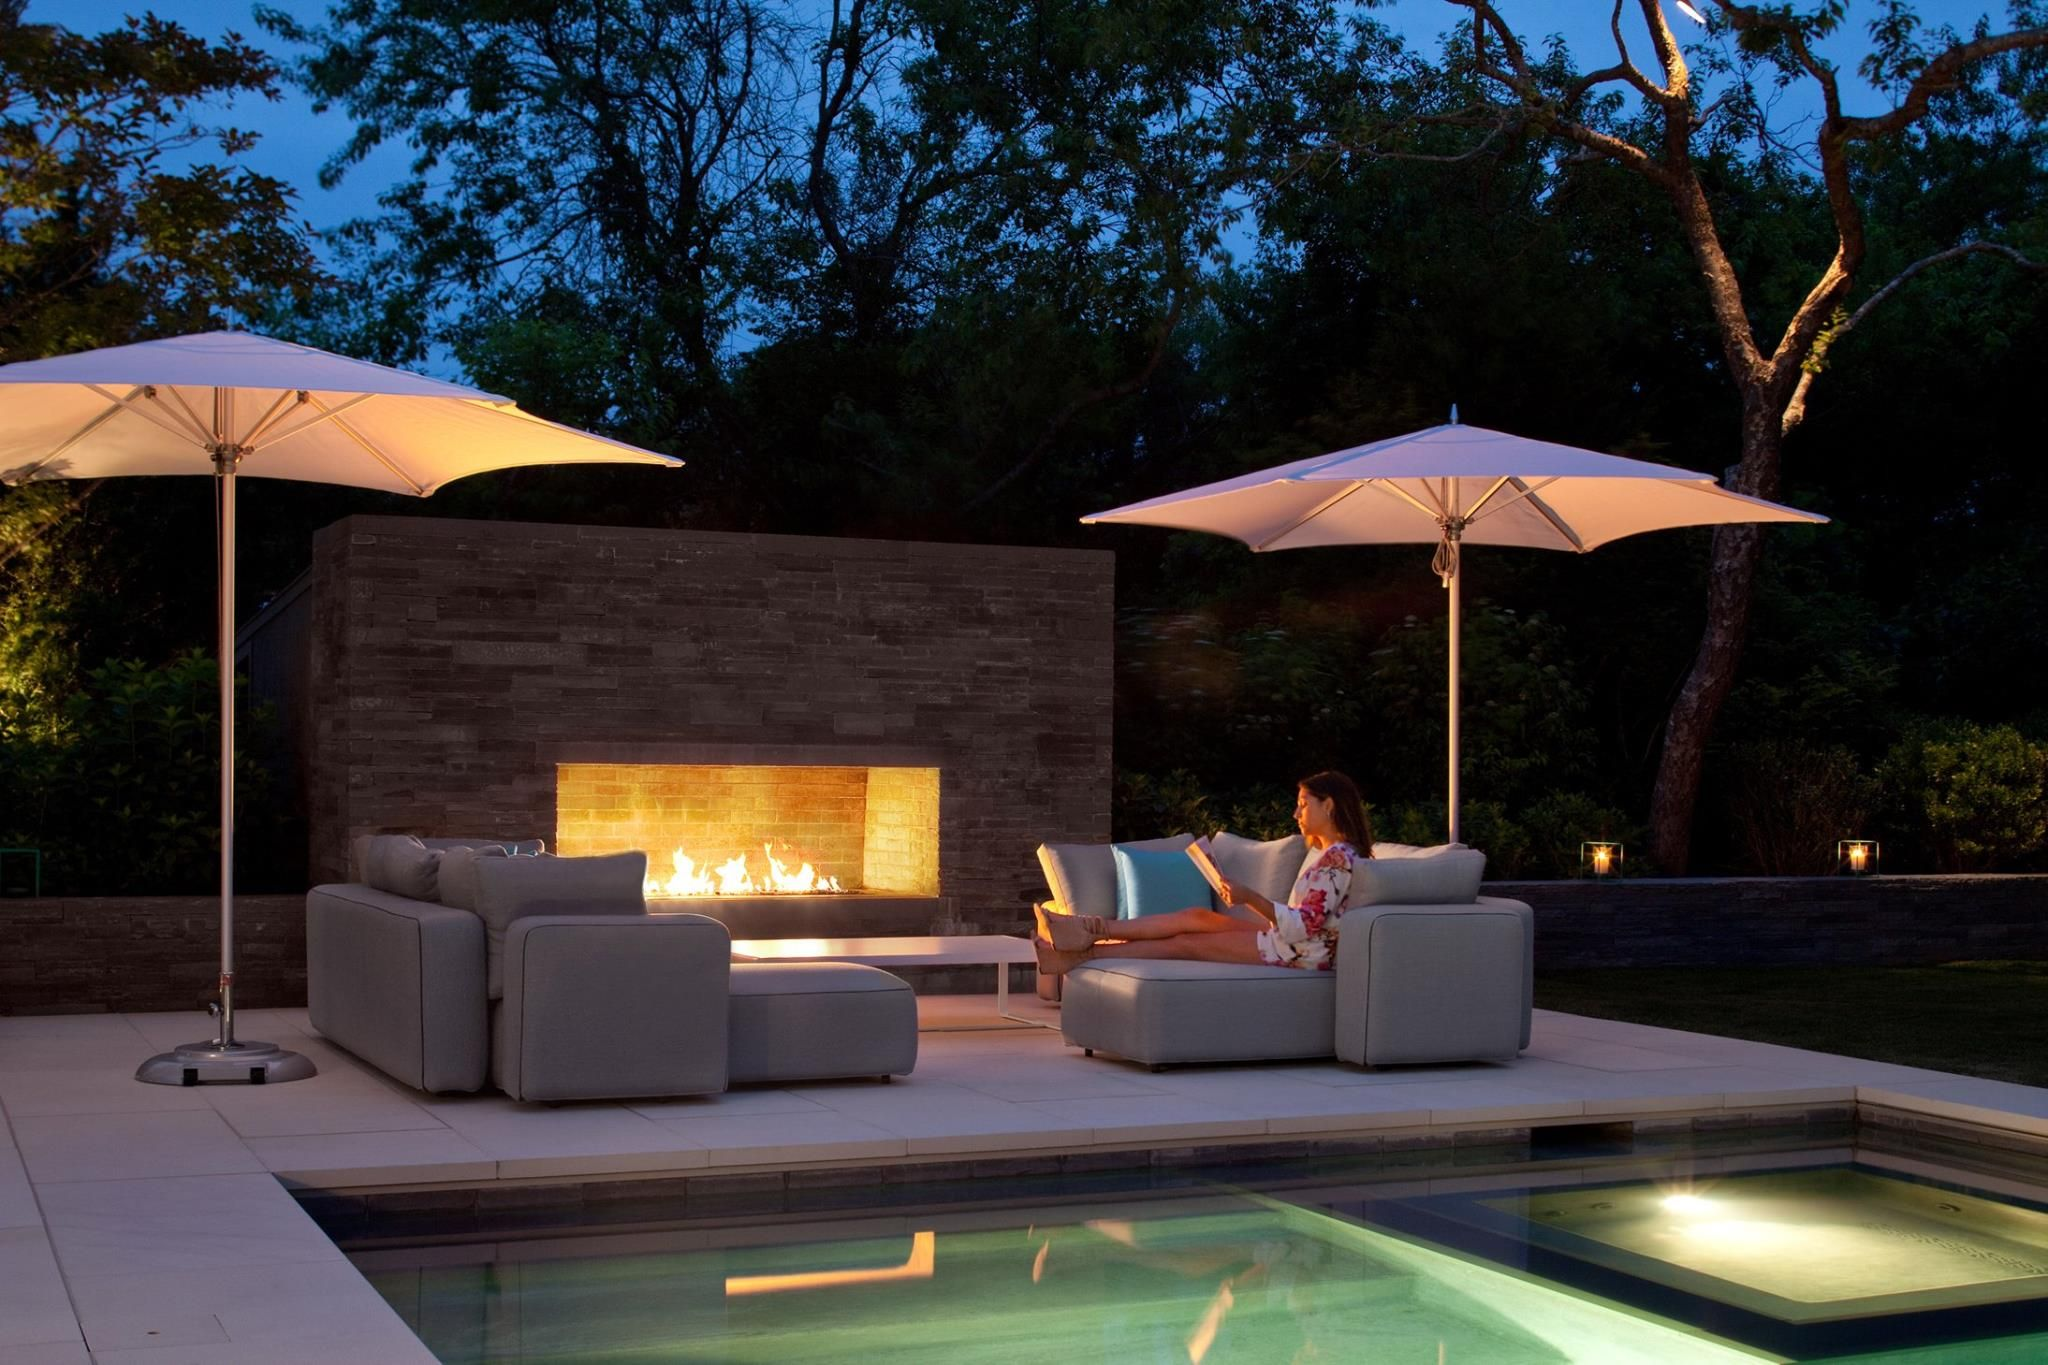 Genial Poolside AND Fireside! TUCCI Umbrellas